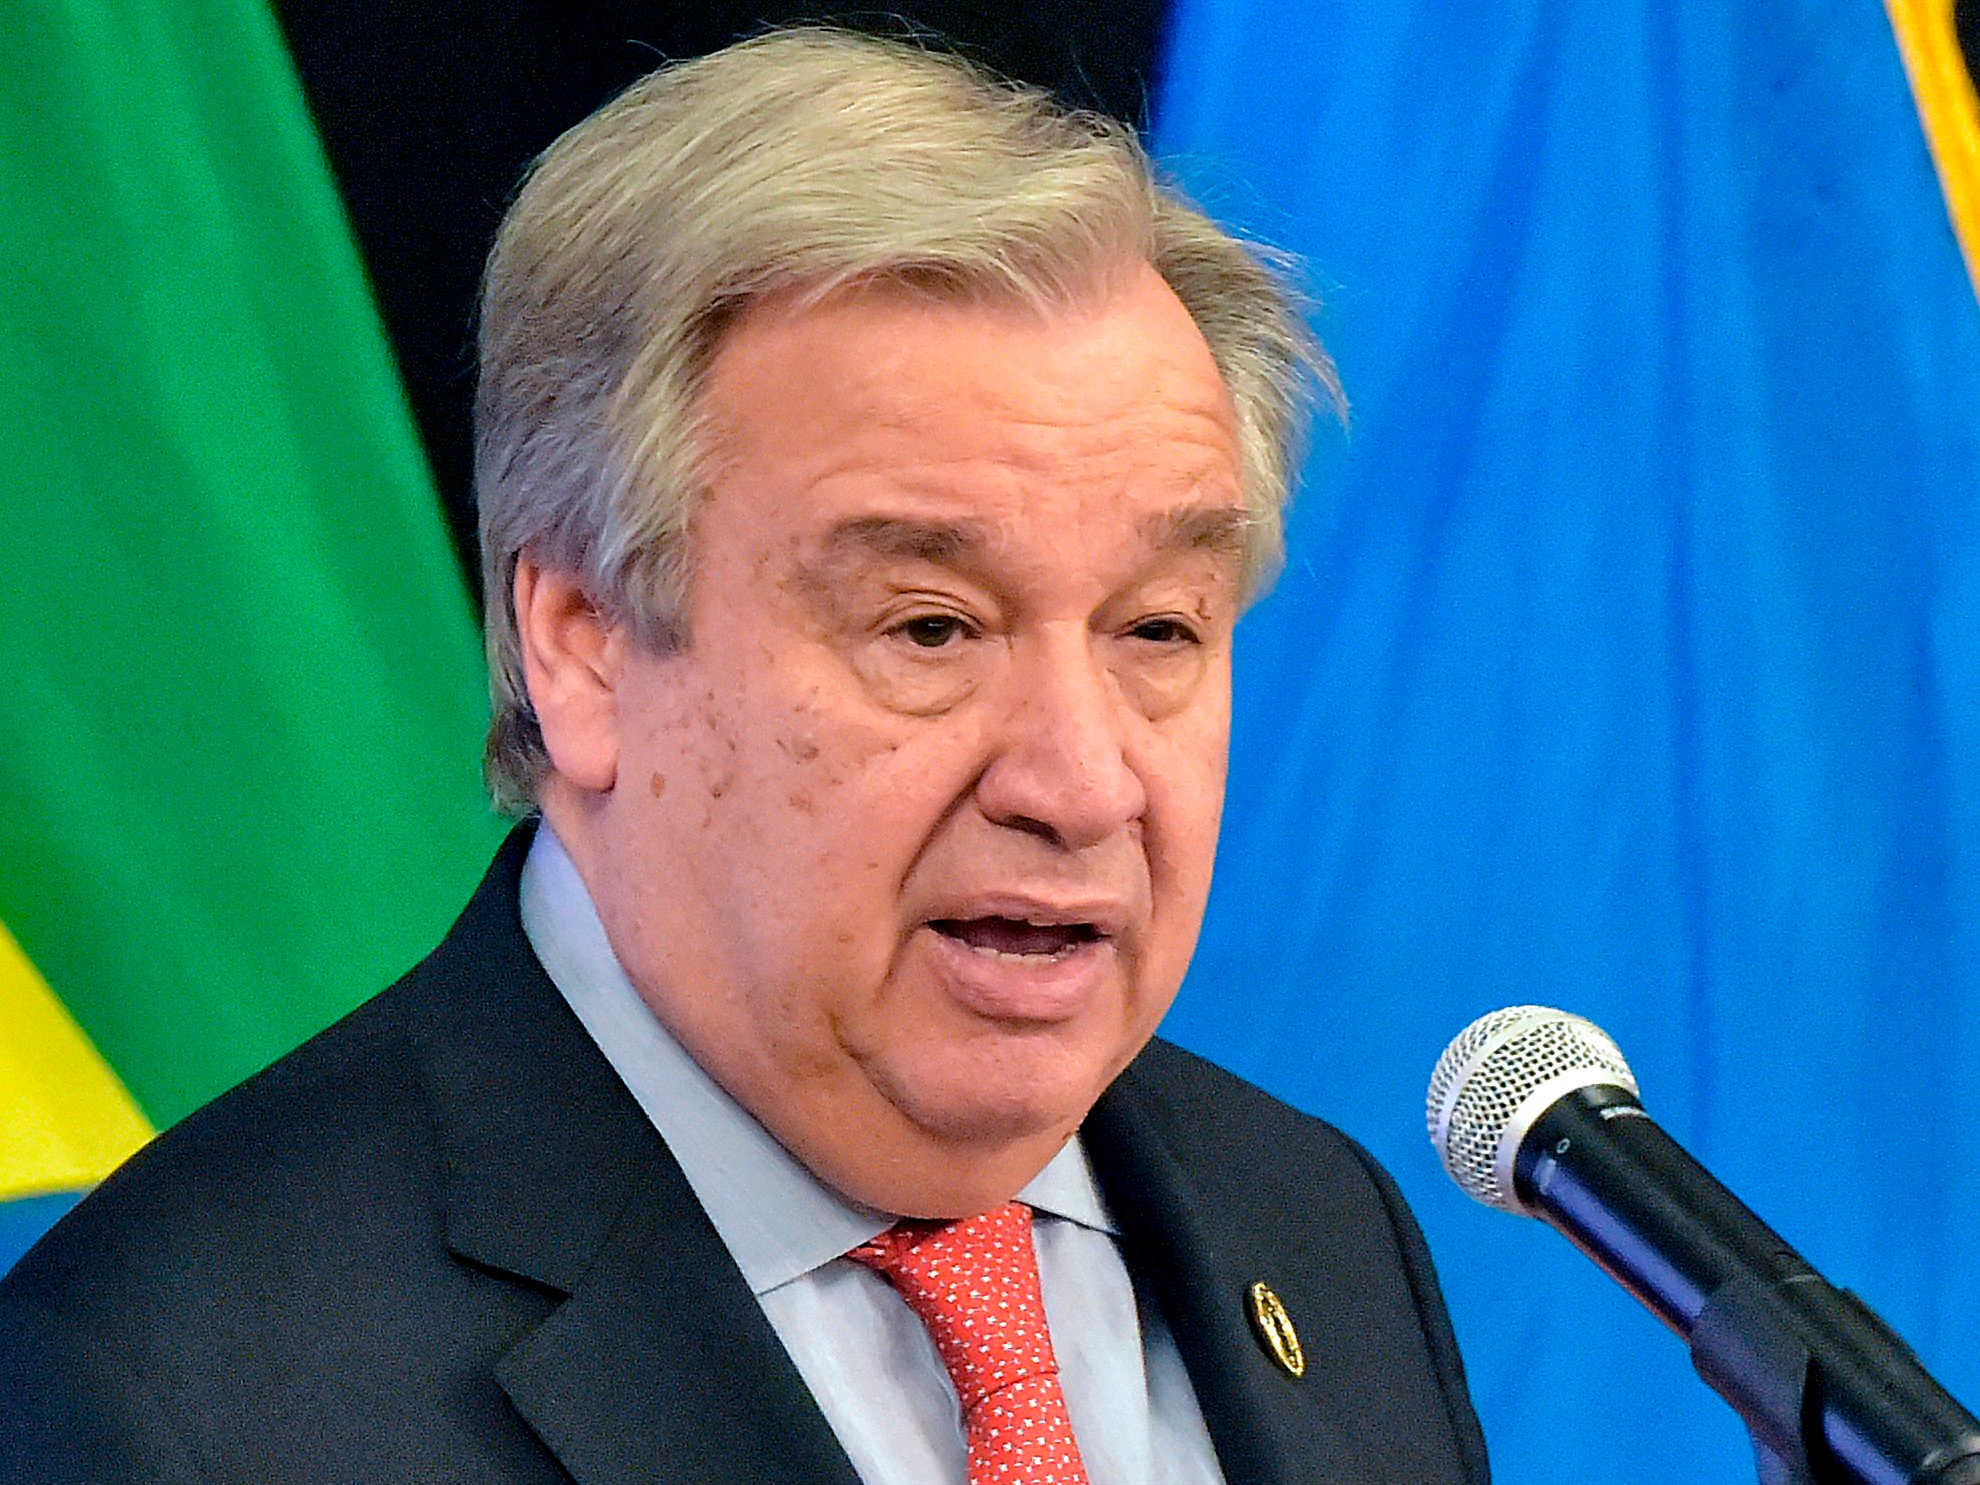 UN chief calls for additional funding for WHO COVID-19 program